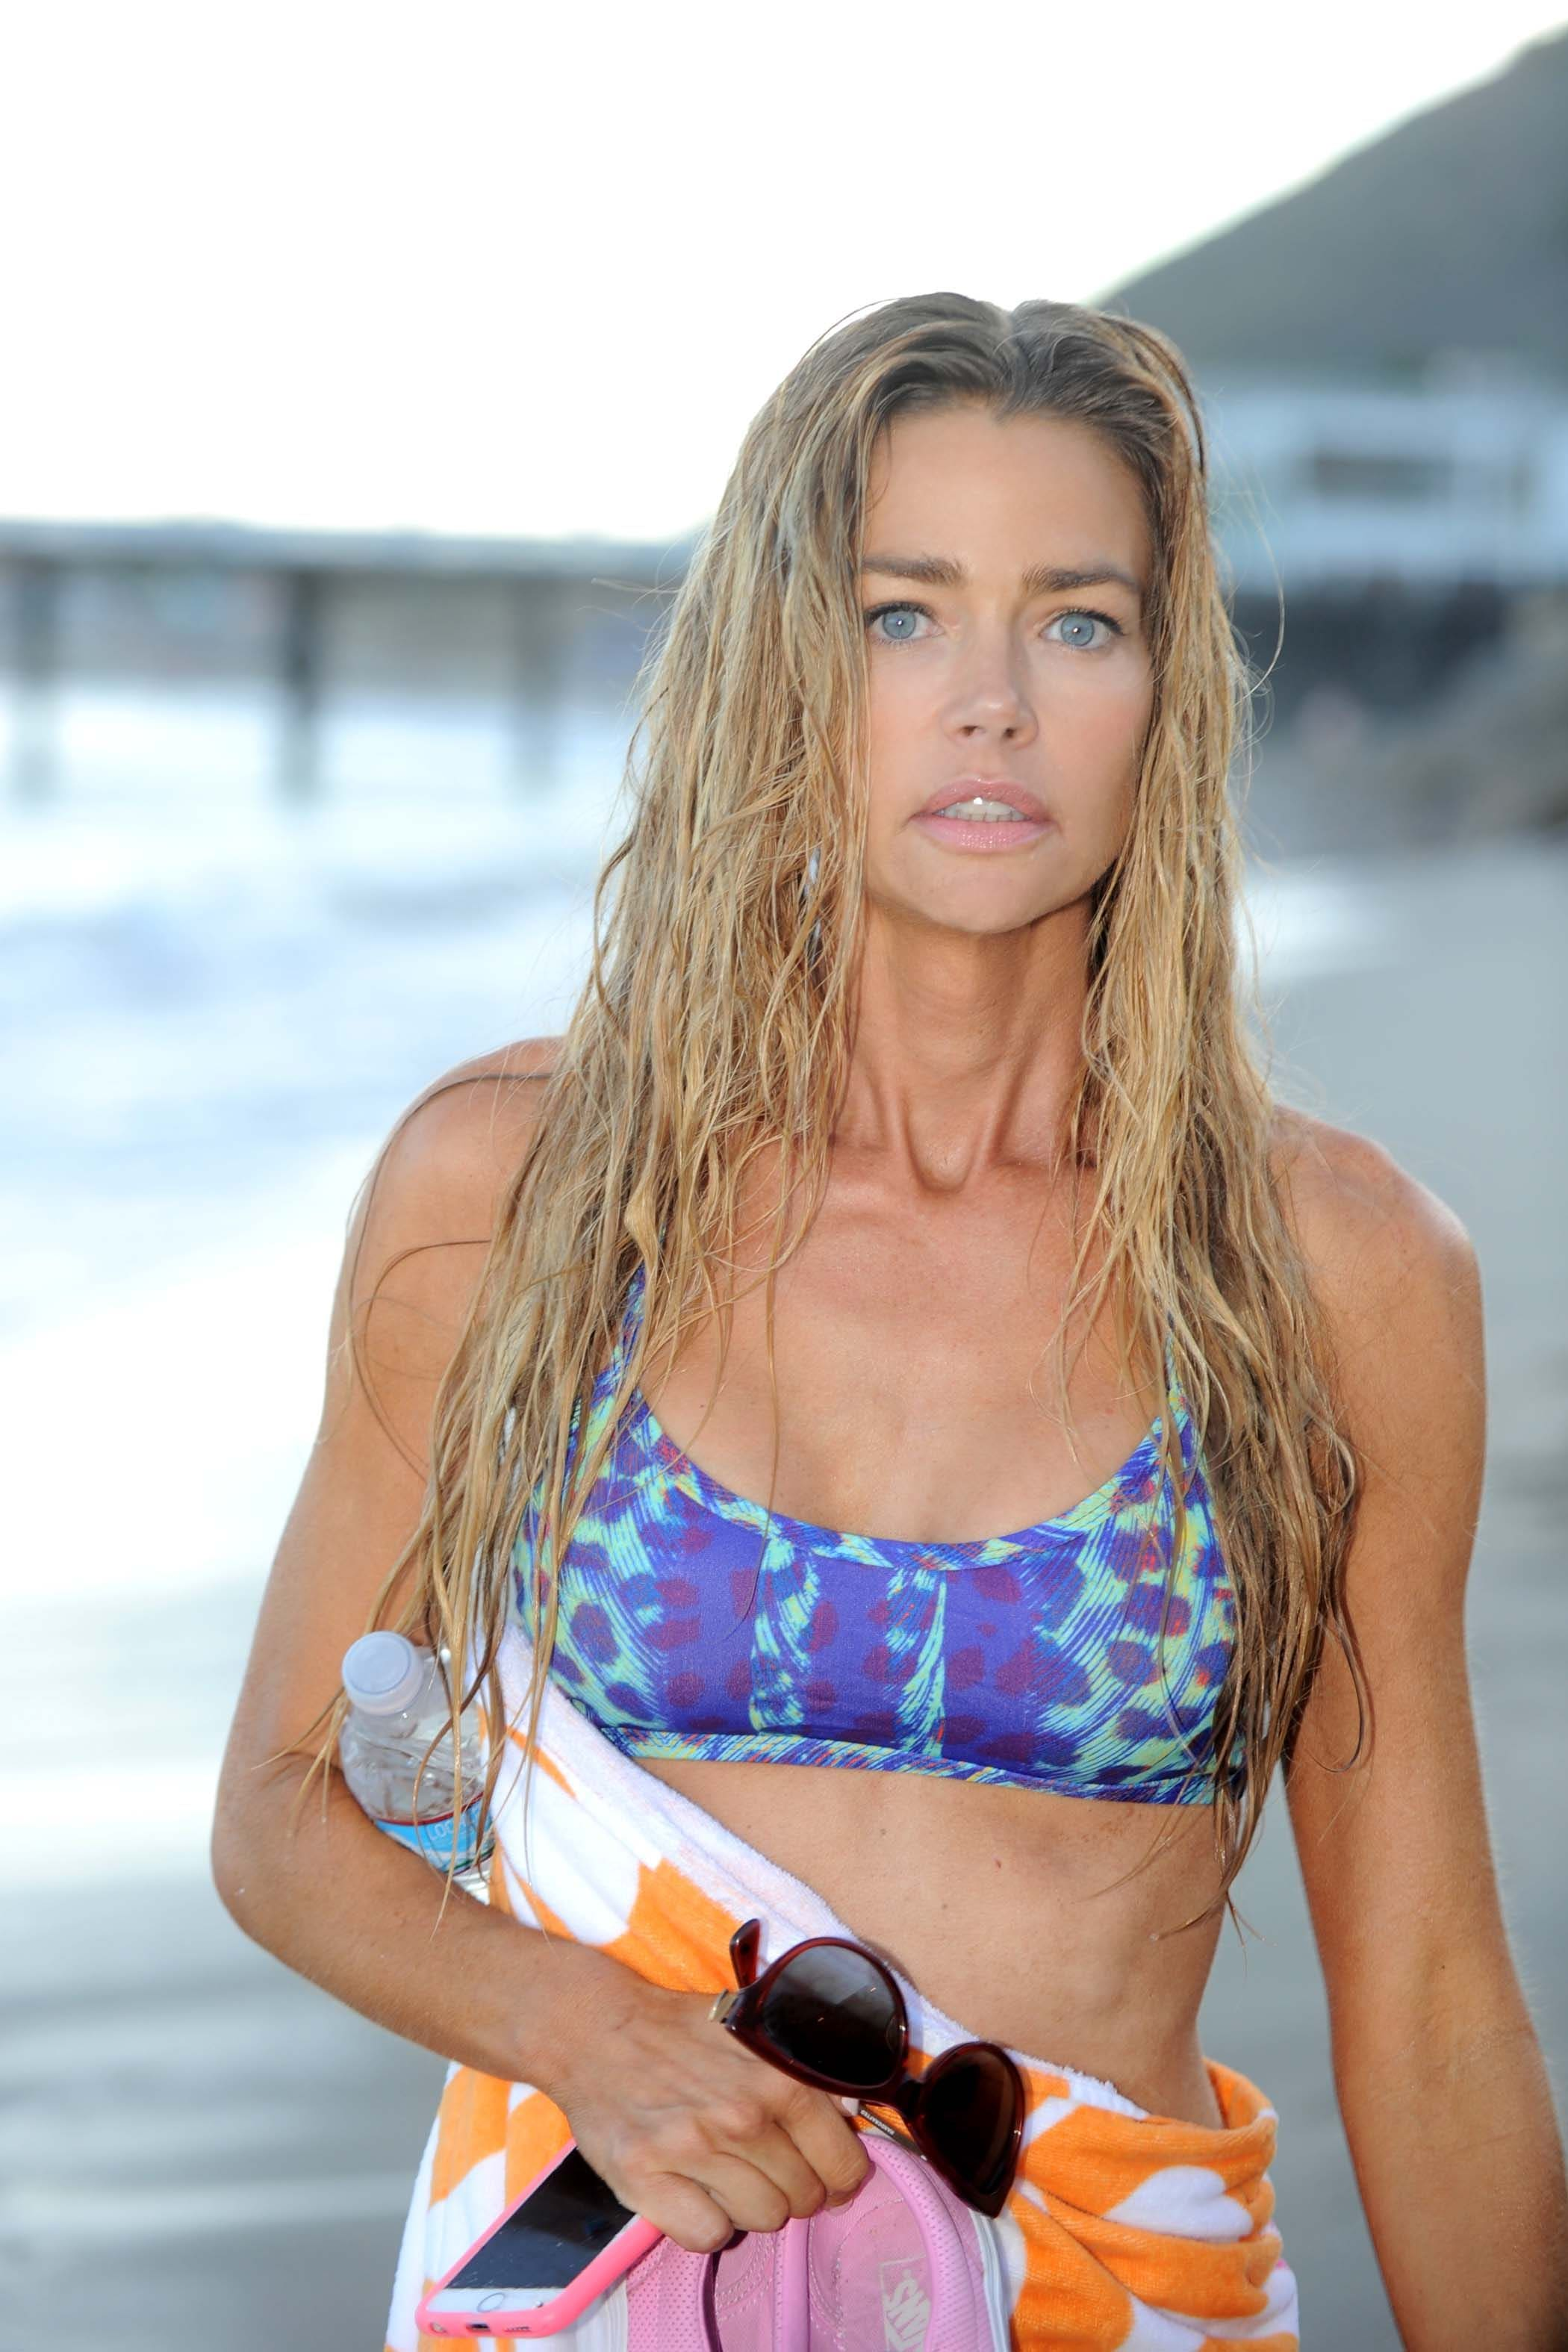 denise richards awesome bikini